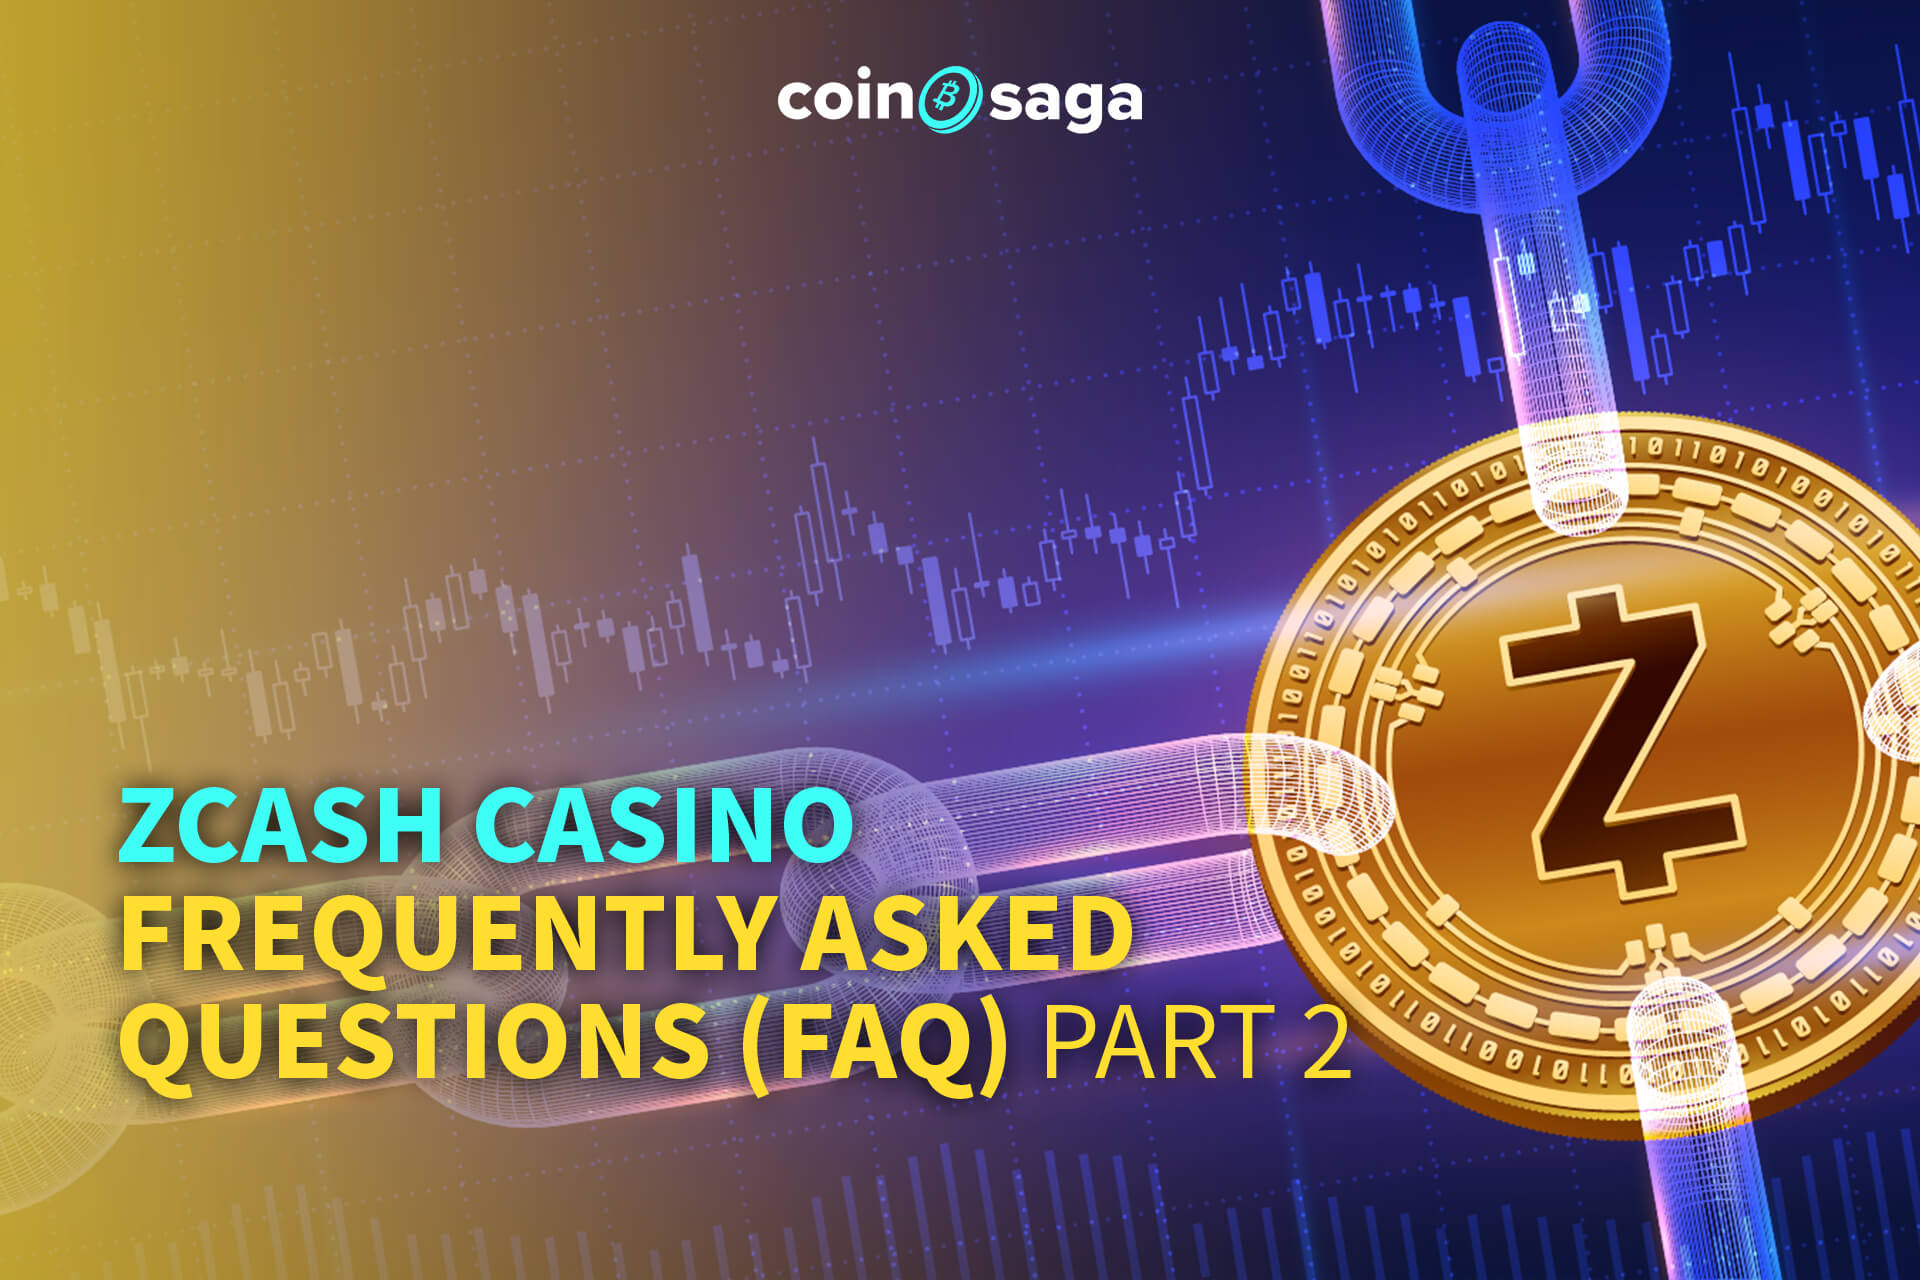 zcash casino faq part 2